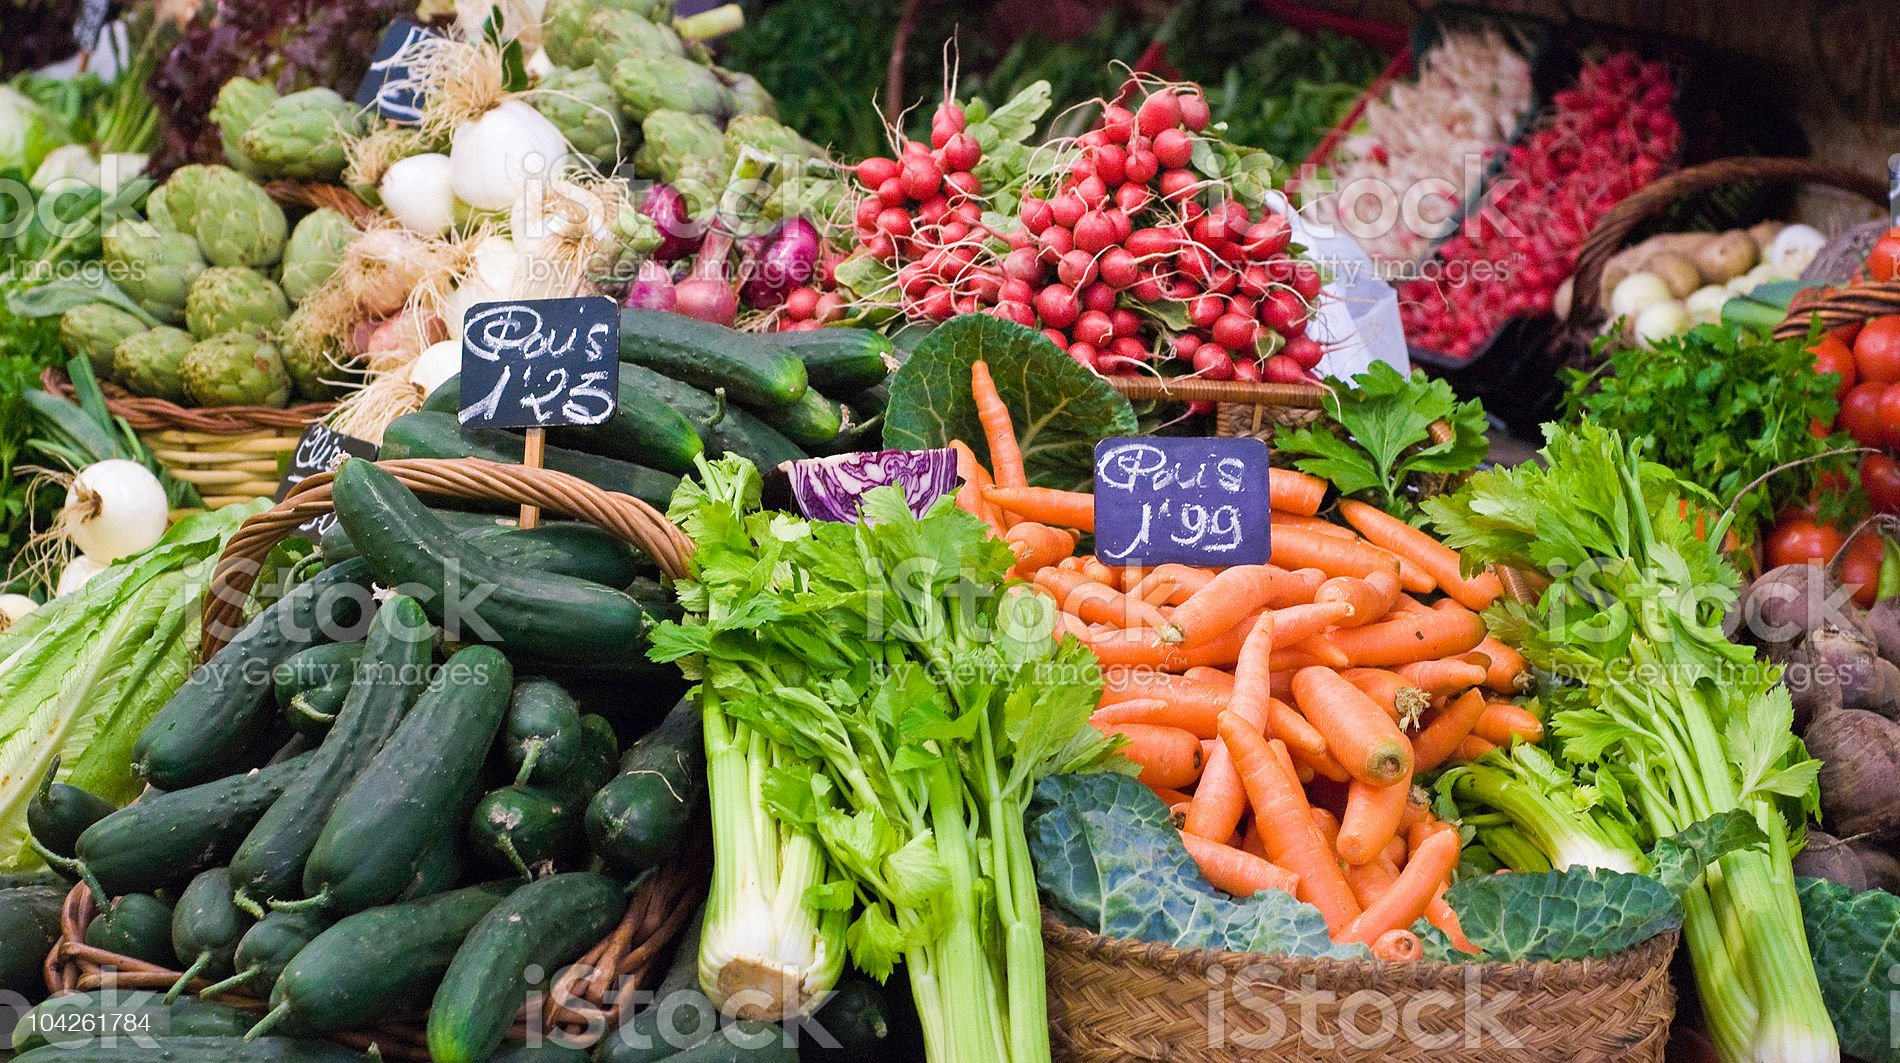 Fresh food series royalty-free stock photo